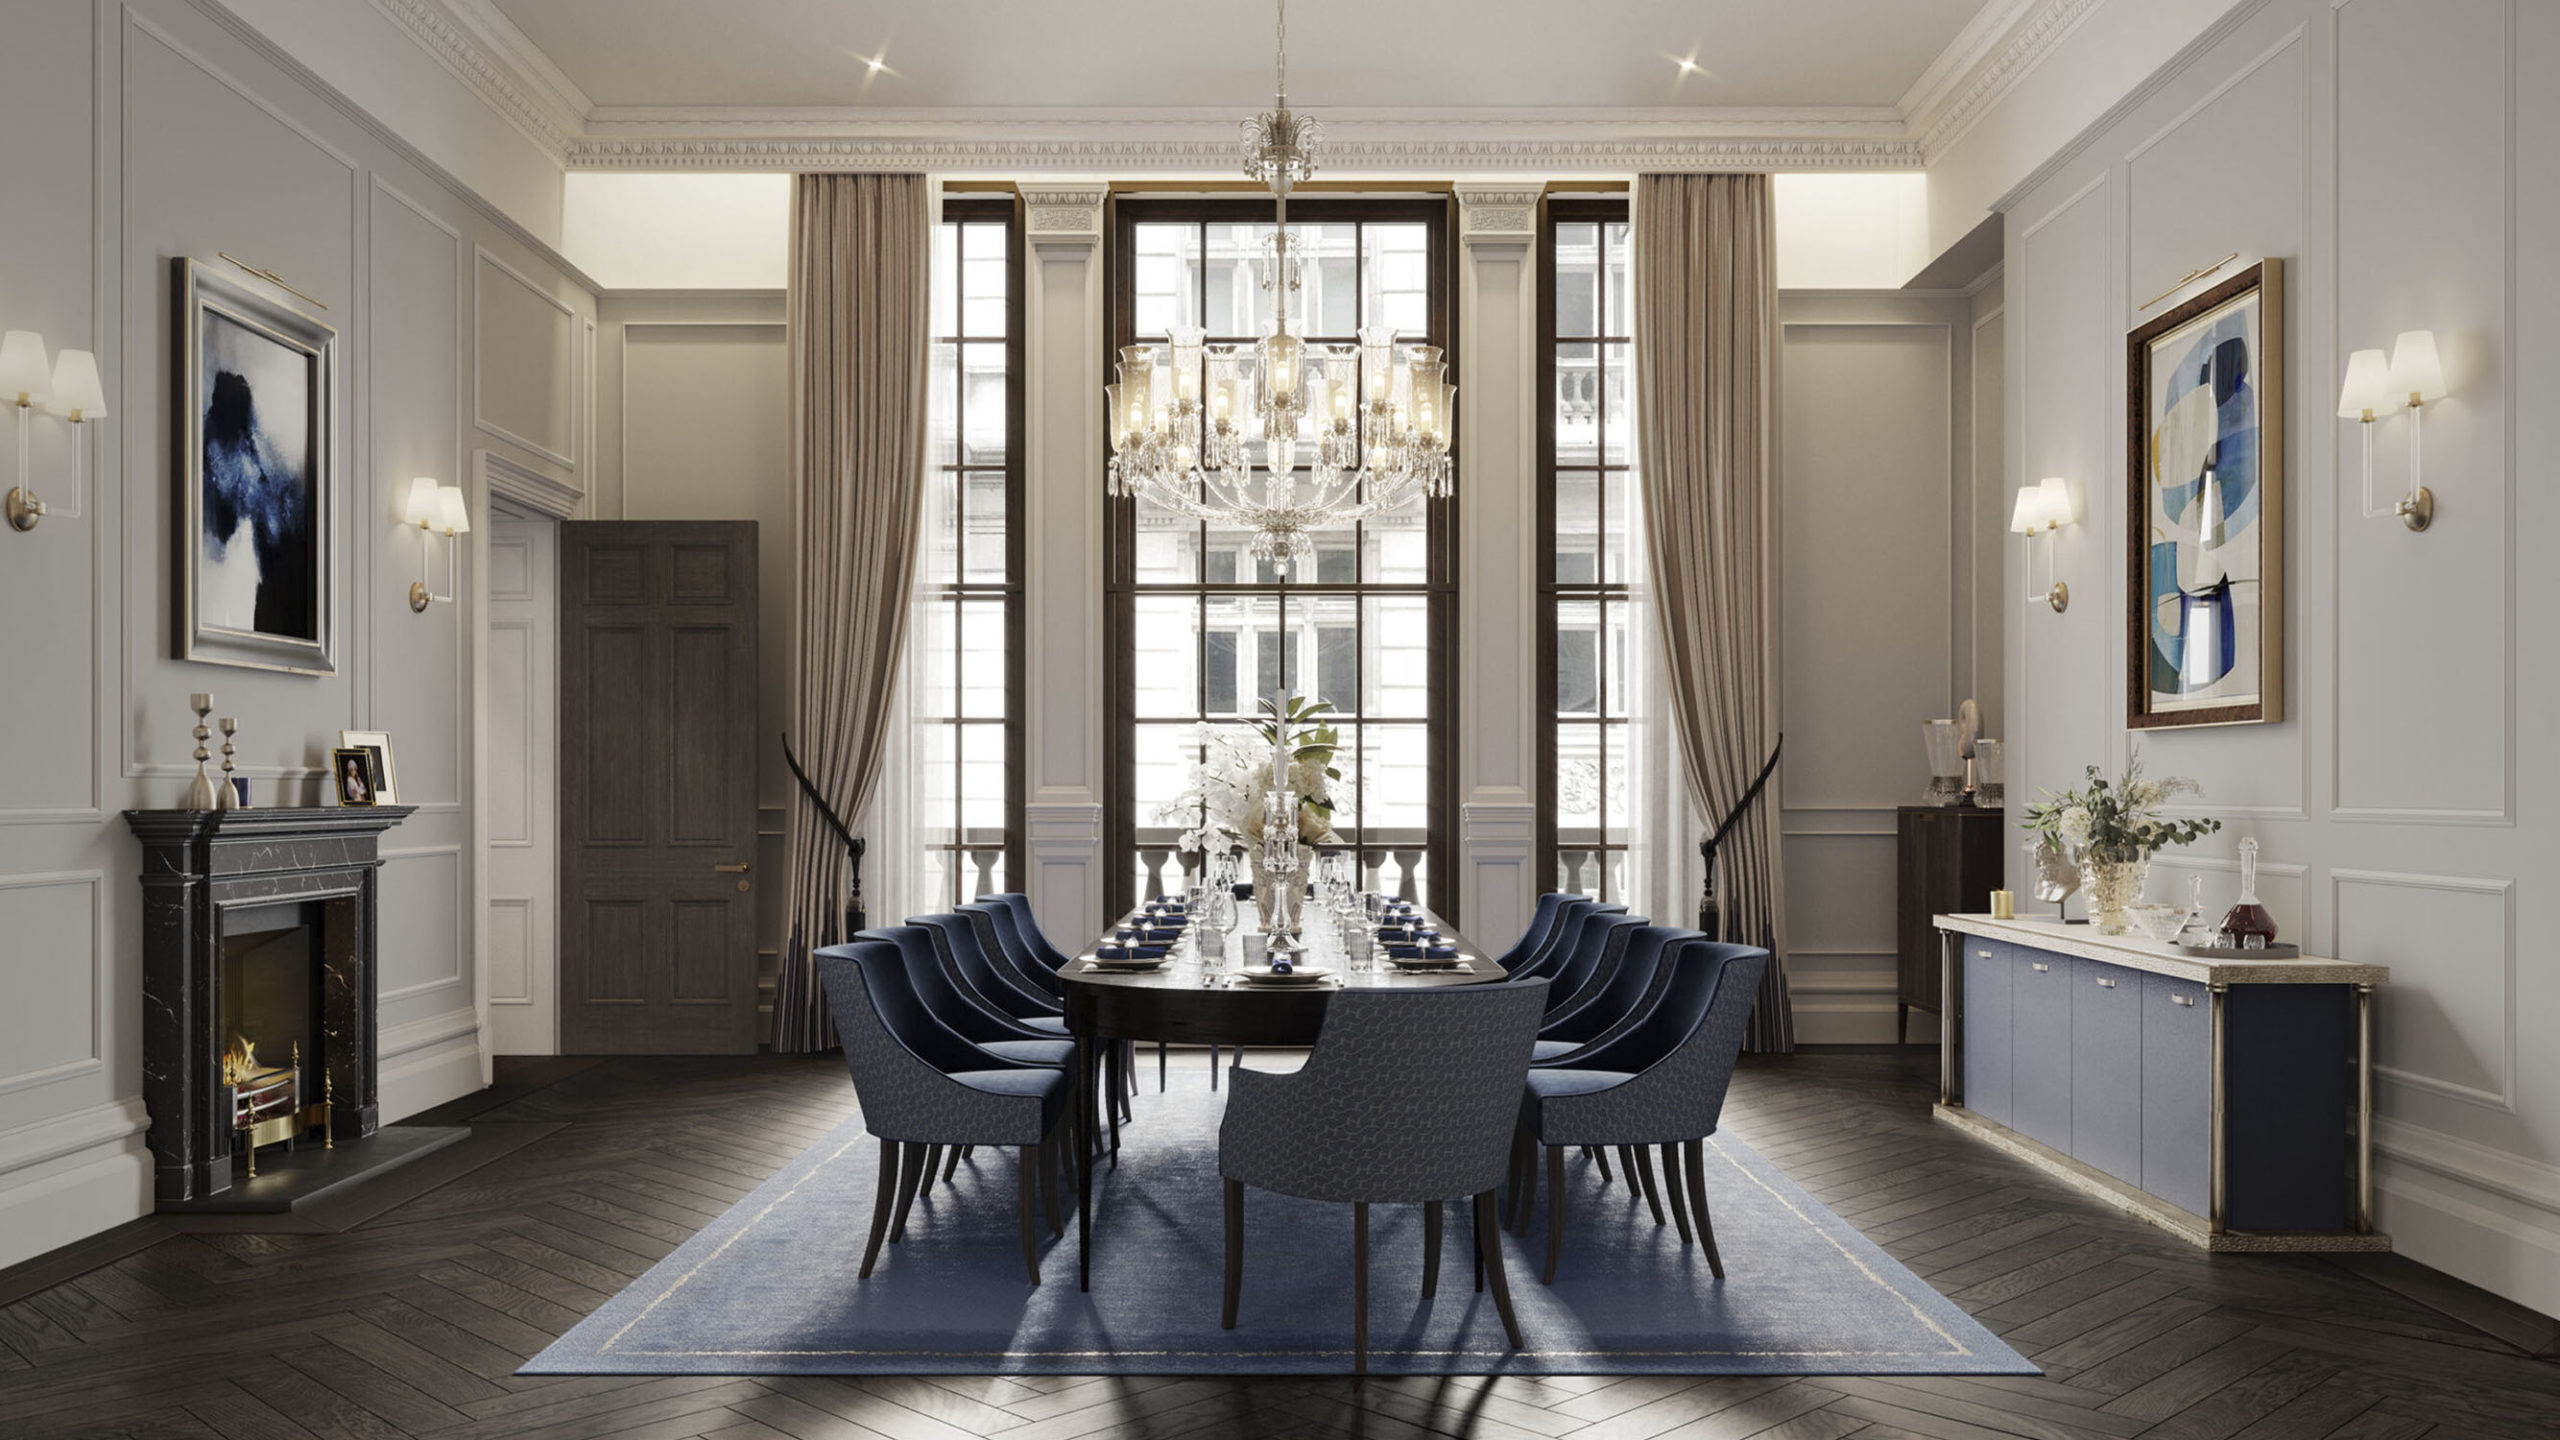 The OWO Residences Dining Room